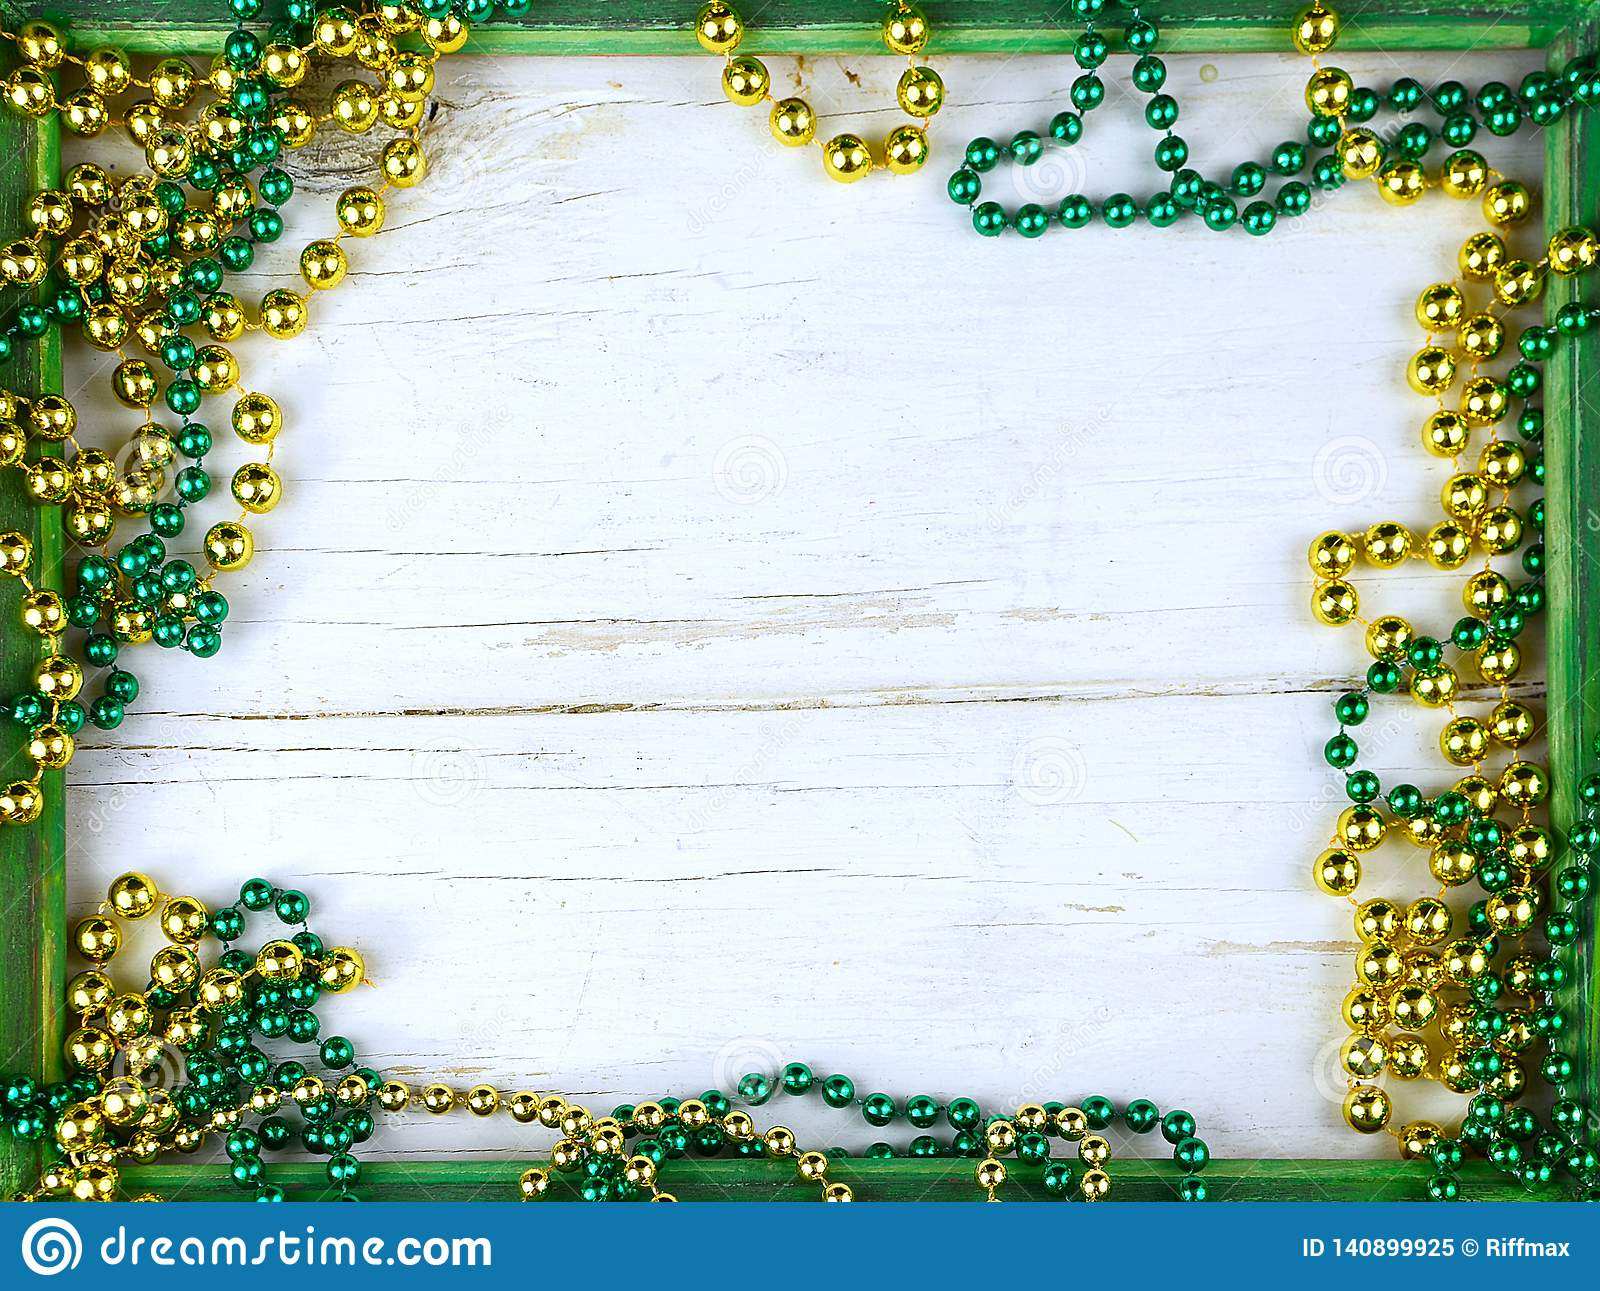 Image for Saint Patrick`s Day on March 17th. Shiny green and gold beads on a wooden frame with rustic woden background.